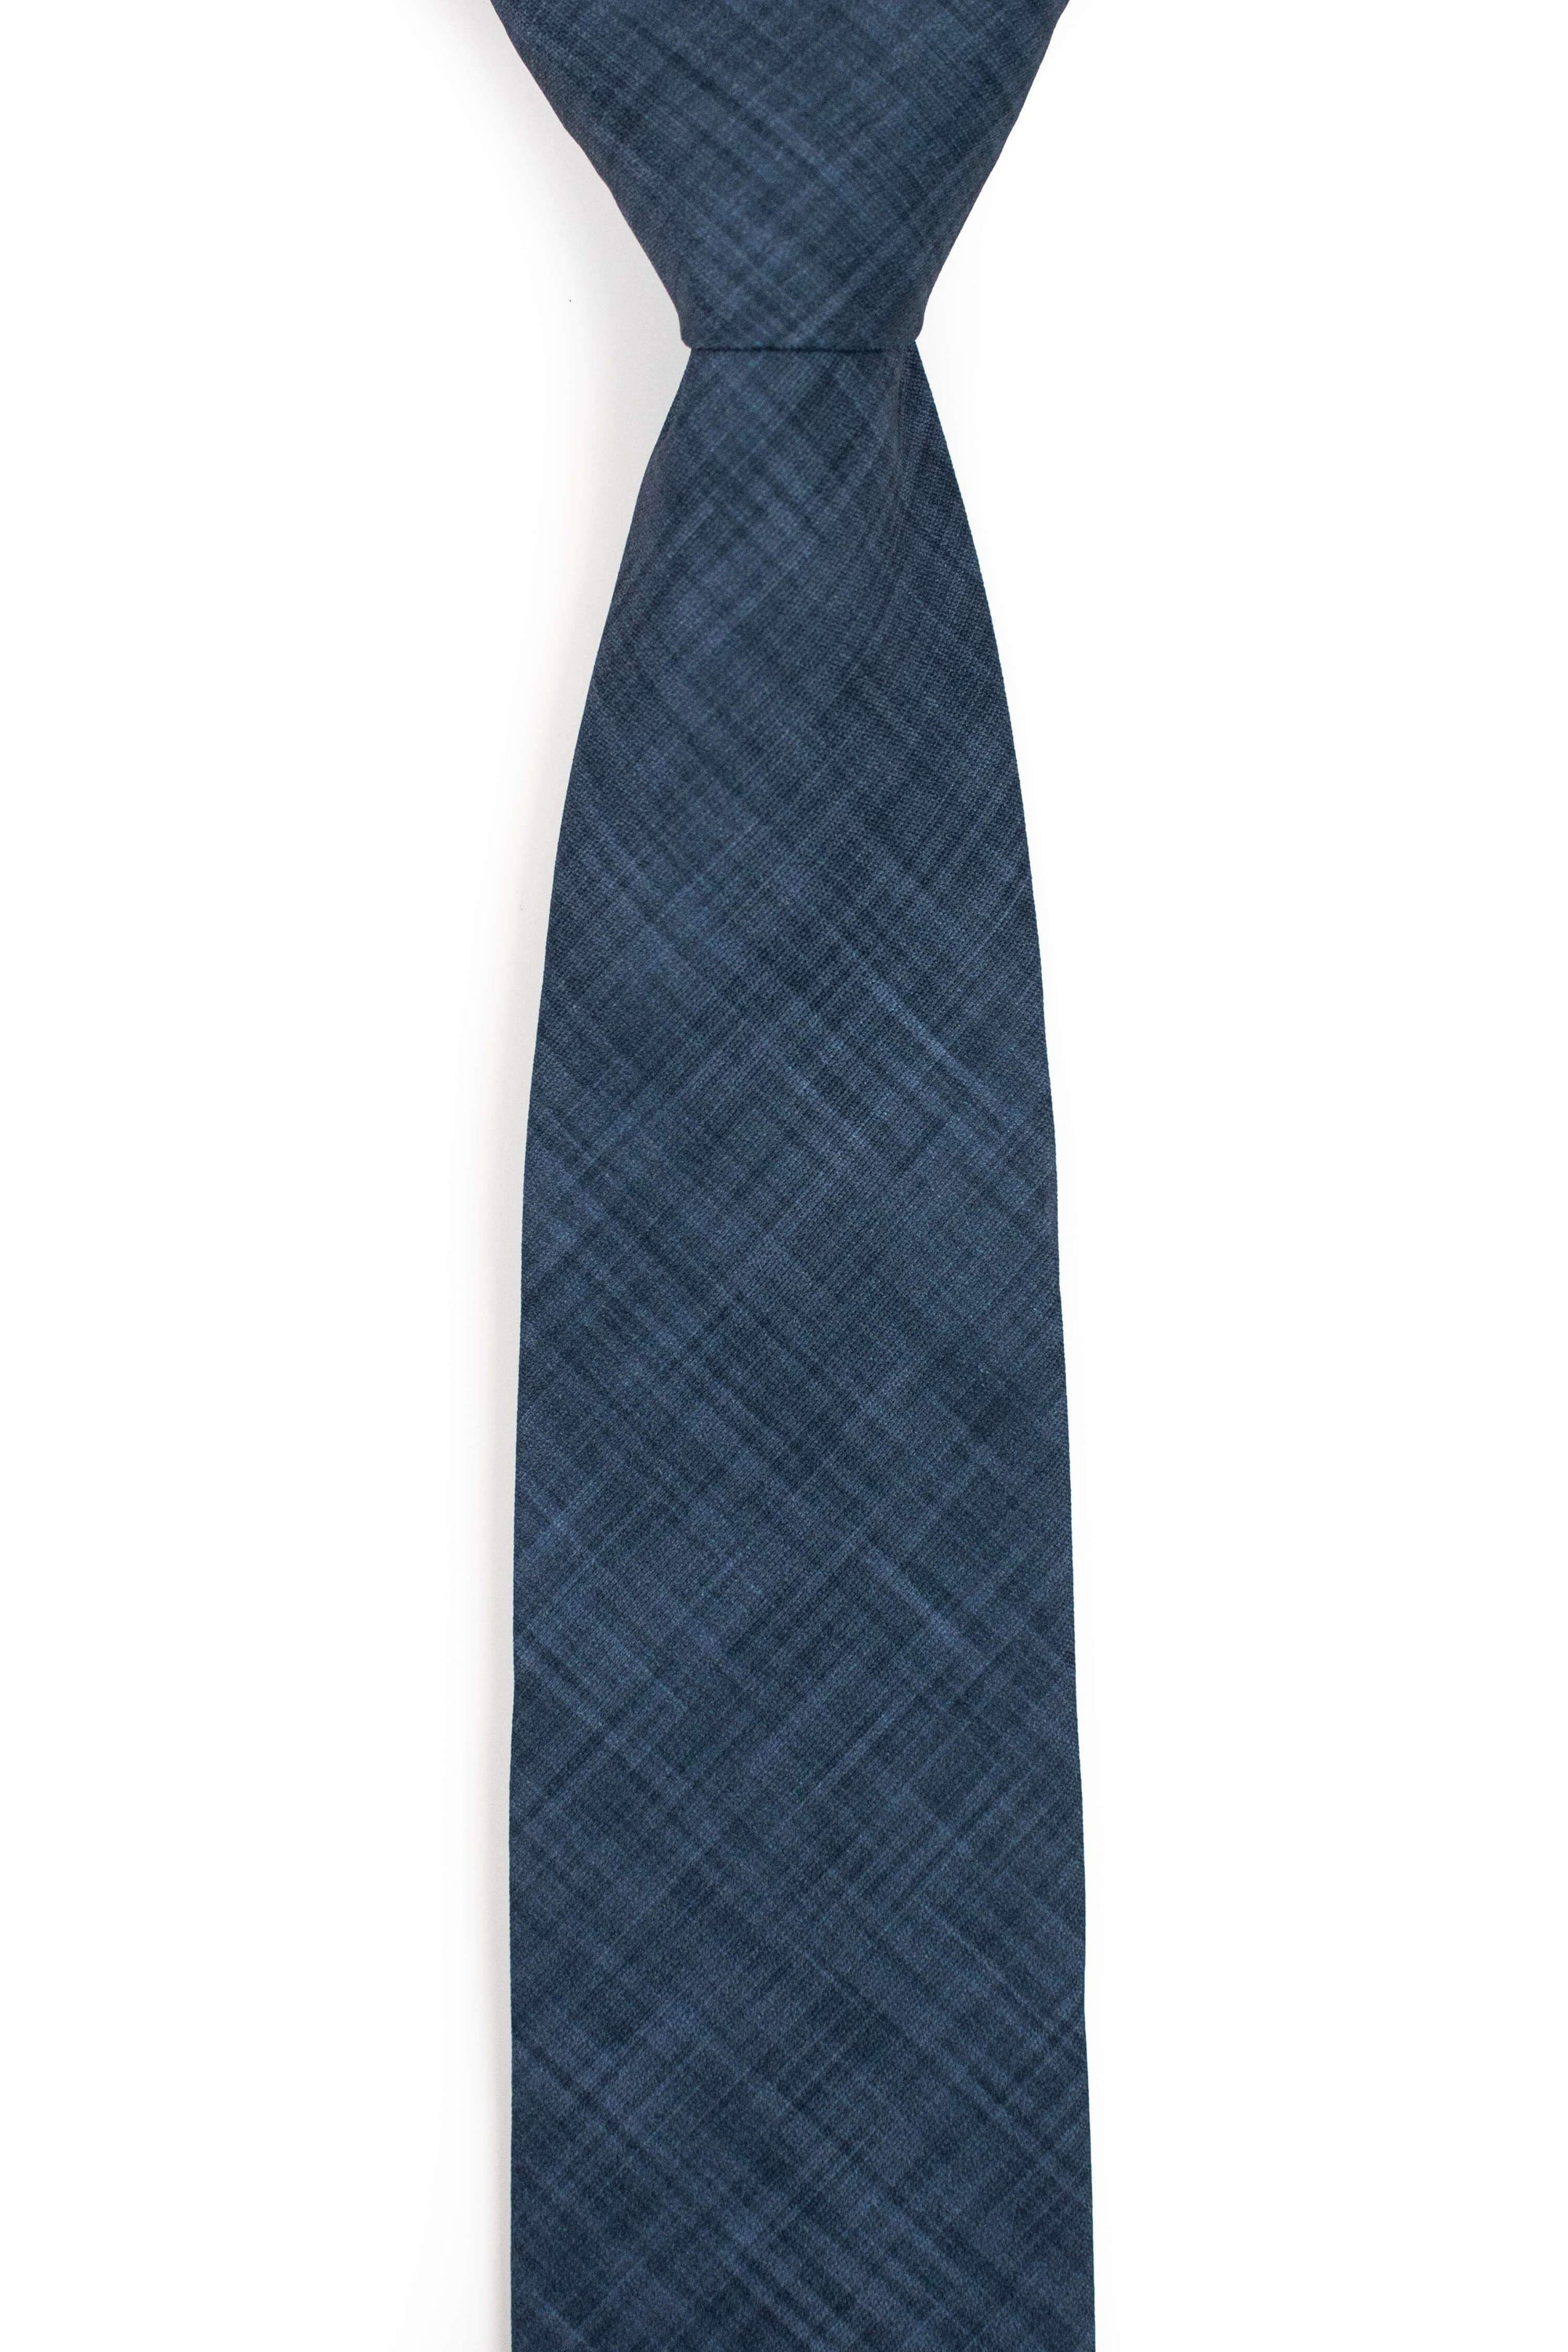 Cobalt | Boy's - Tough Tie